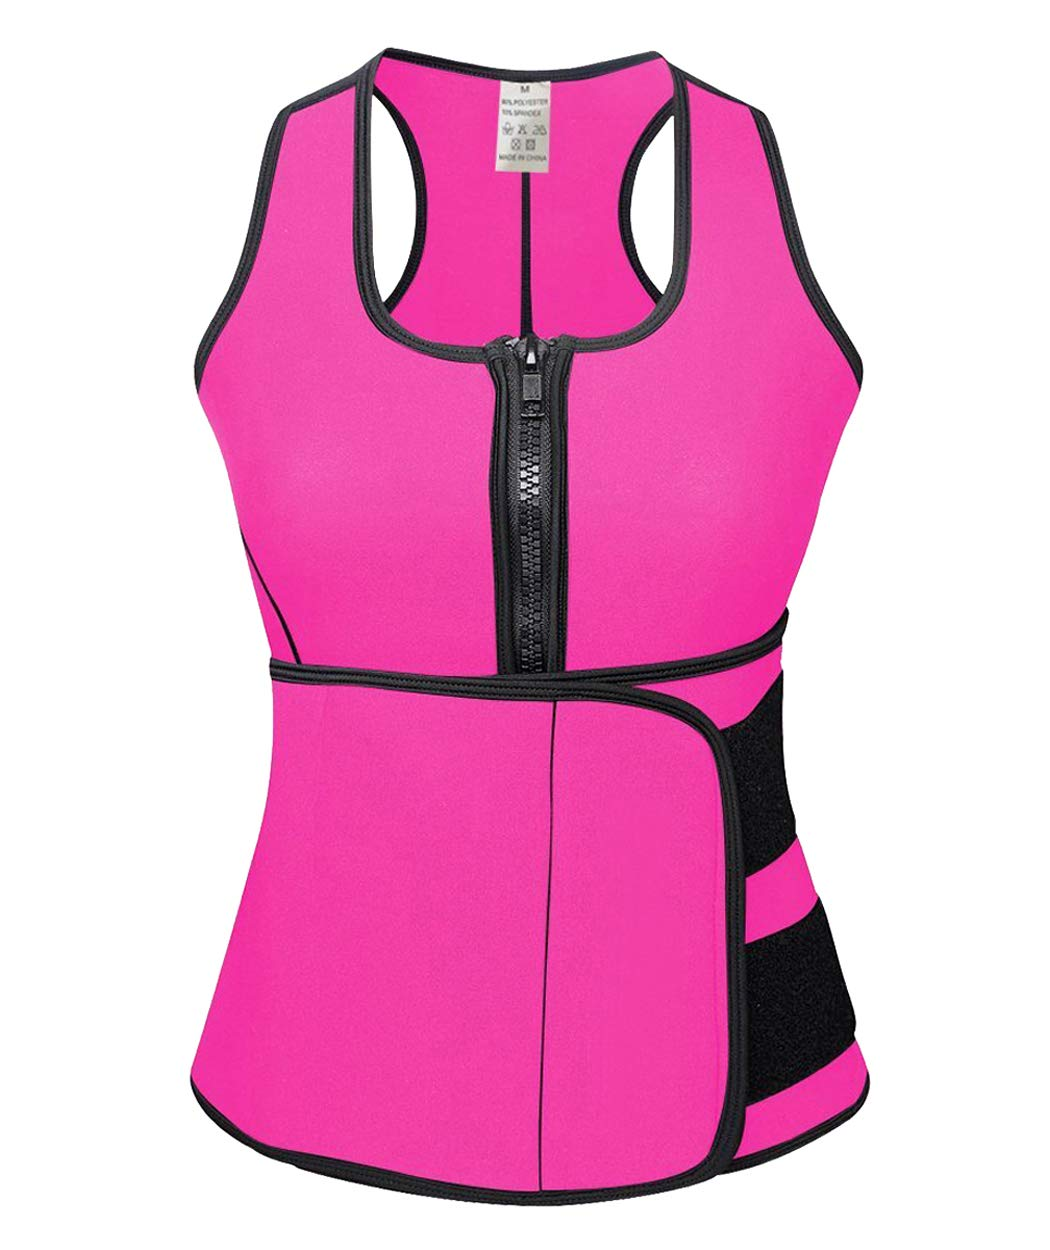 FLORATA Neoprene Sauna Suit Tank Top Vest with Adjustable Waist Trimmer Belt (See The Size Chart)